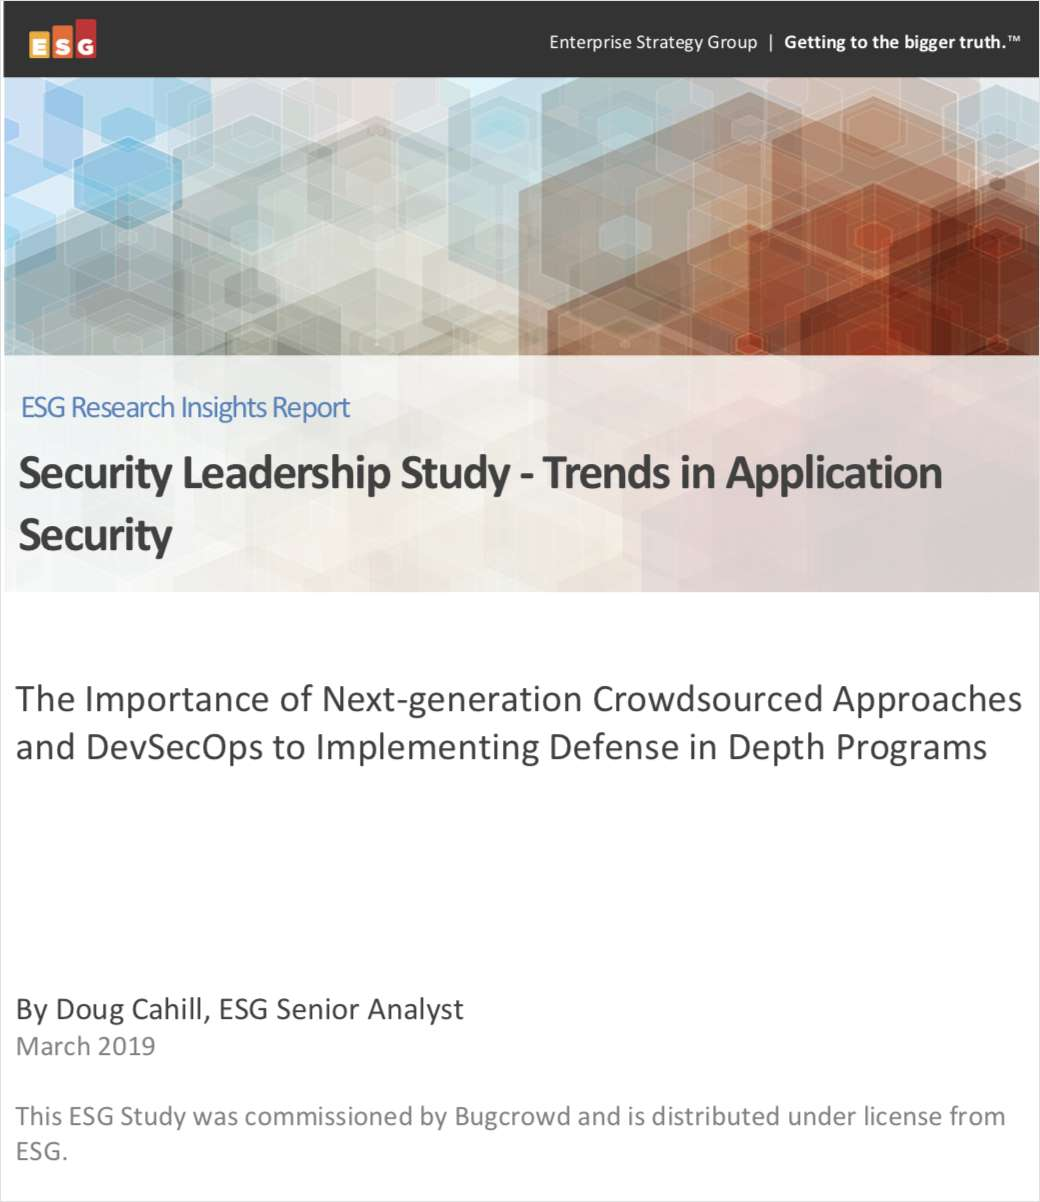 Security Leadership Study - Trends in Application Security